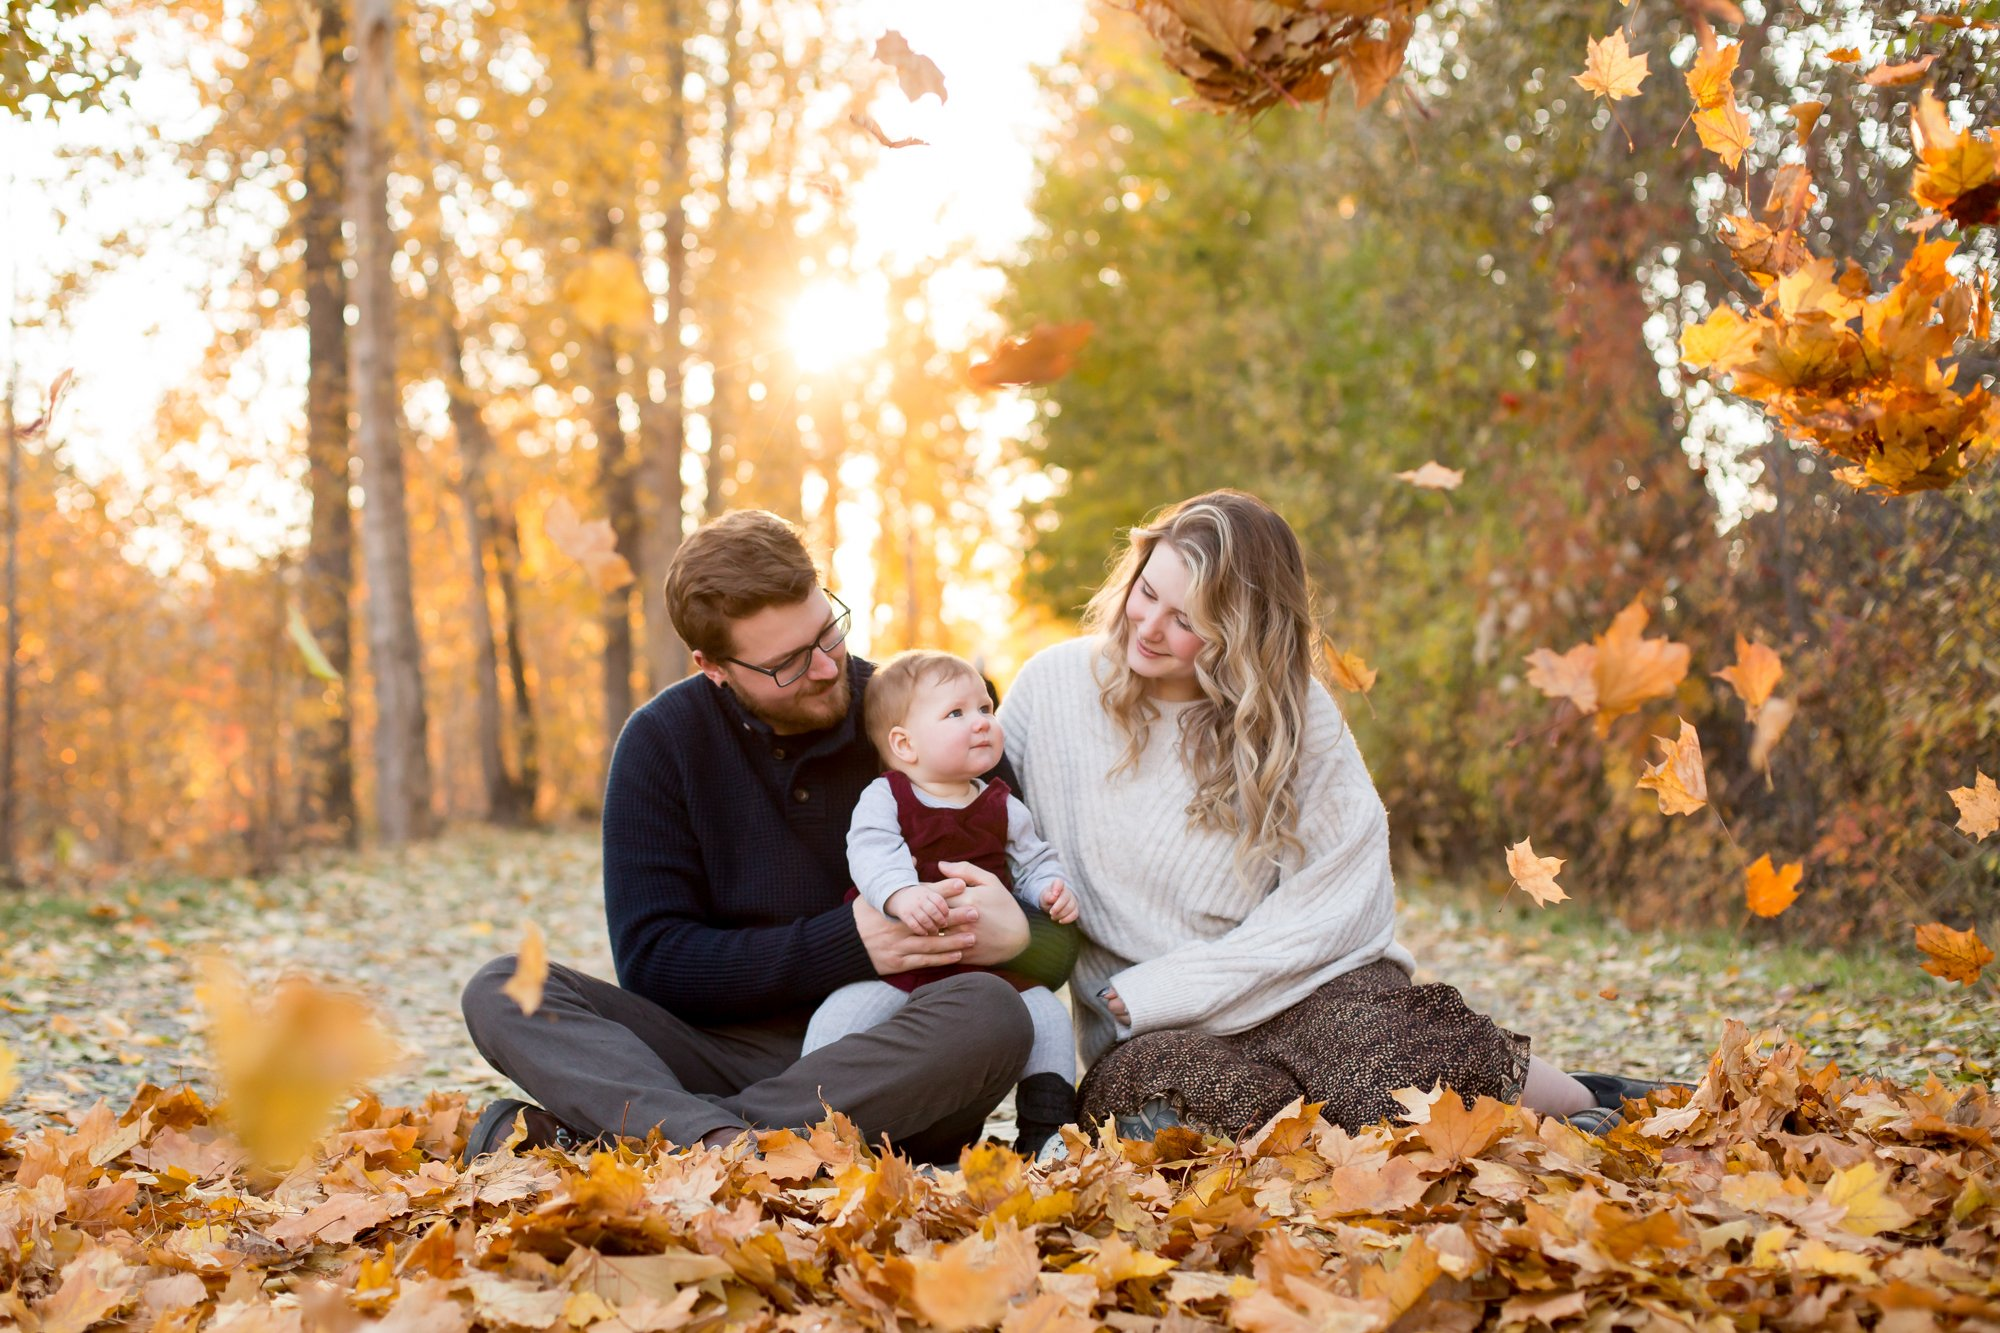 A family sitting in all the fall leaves